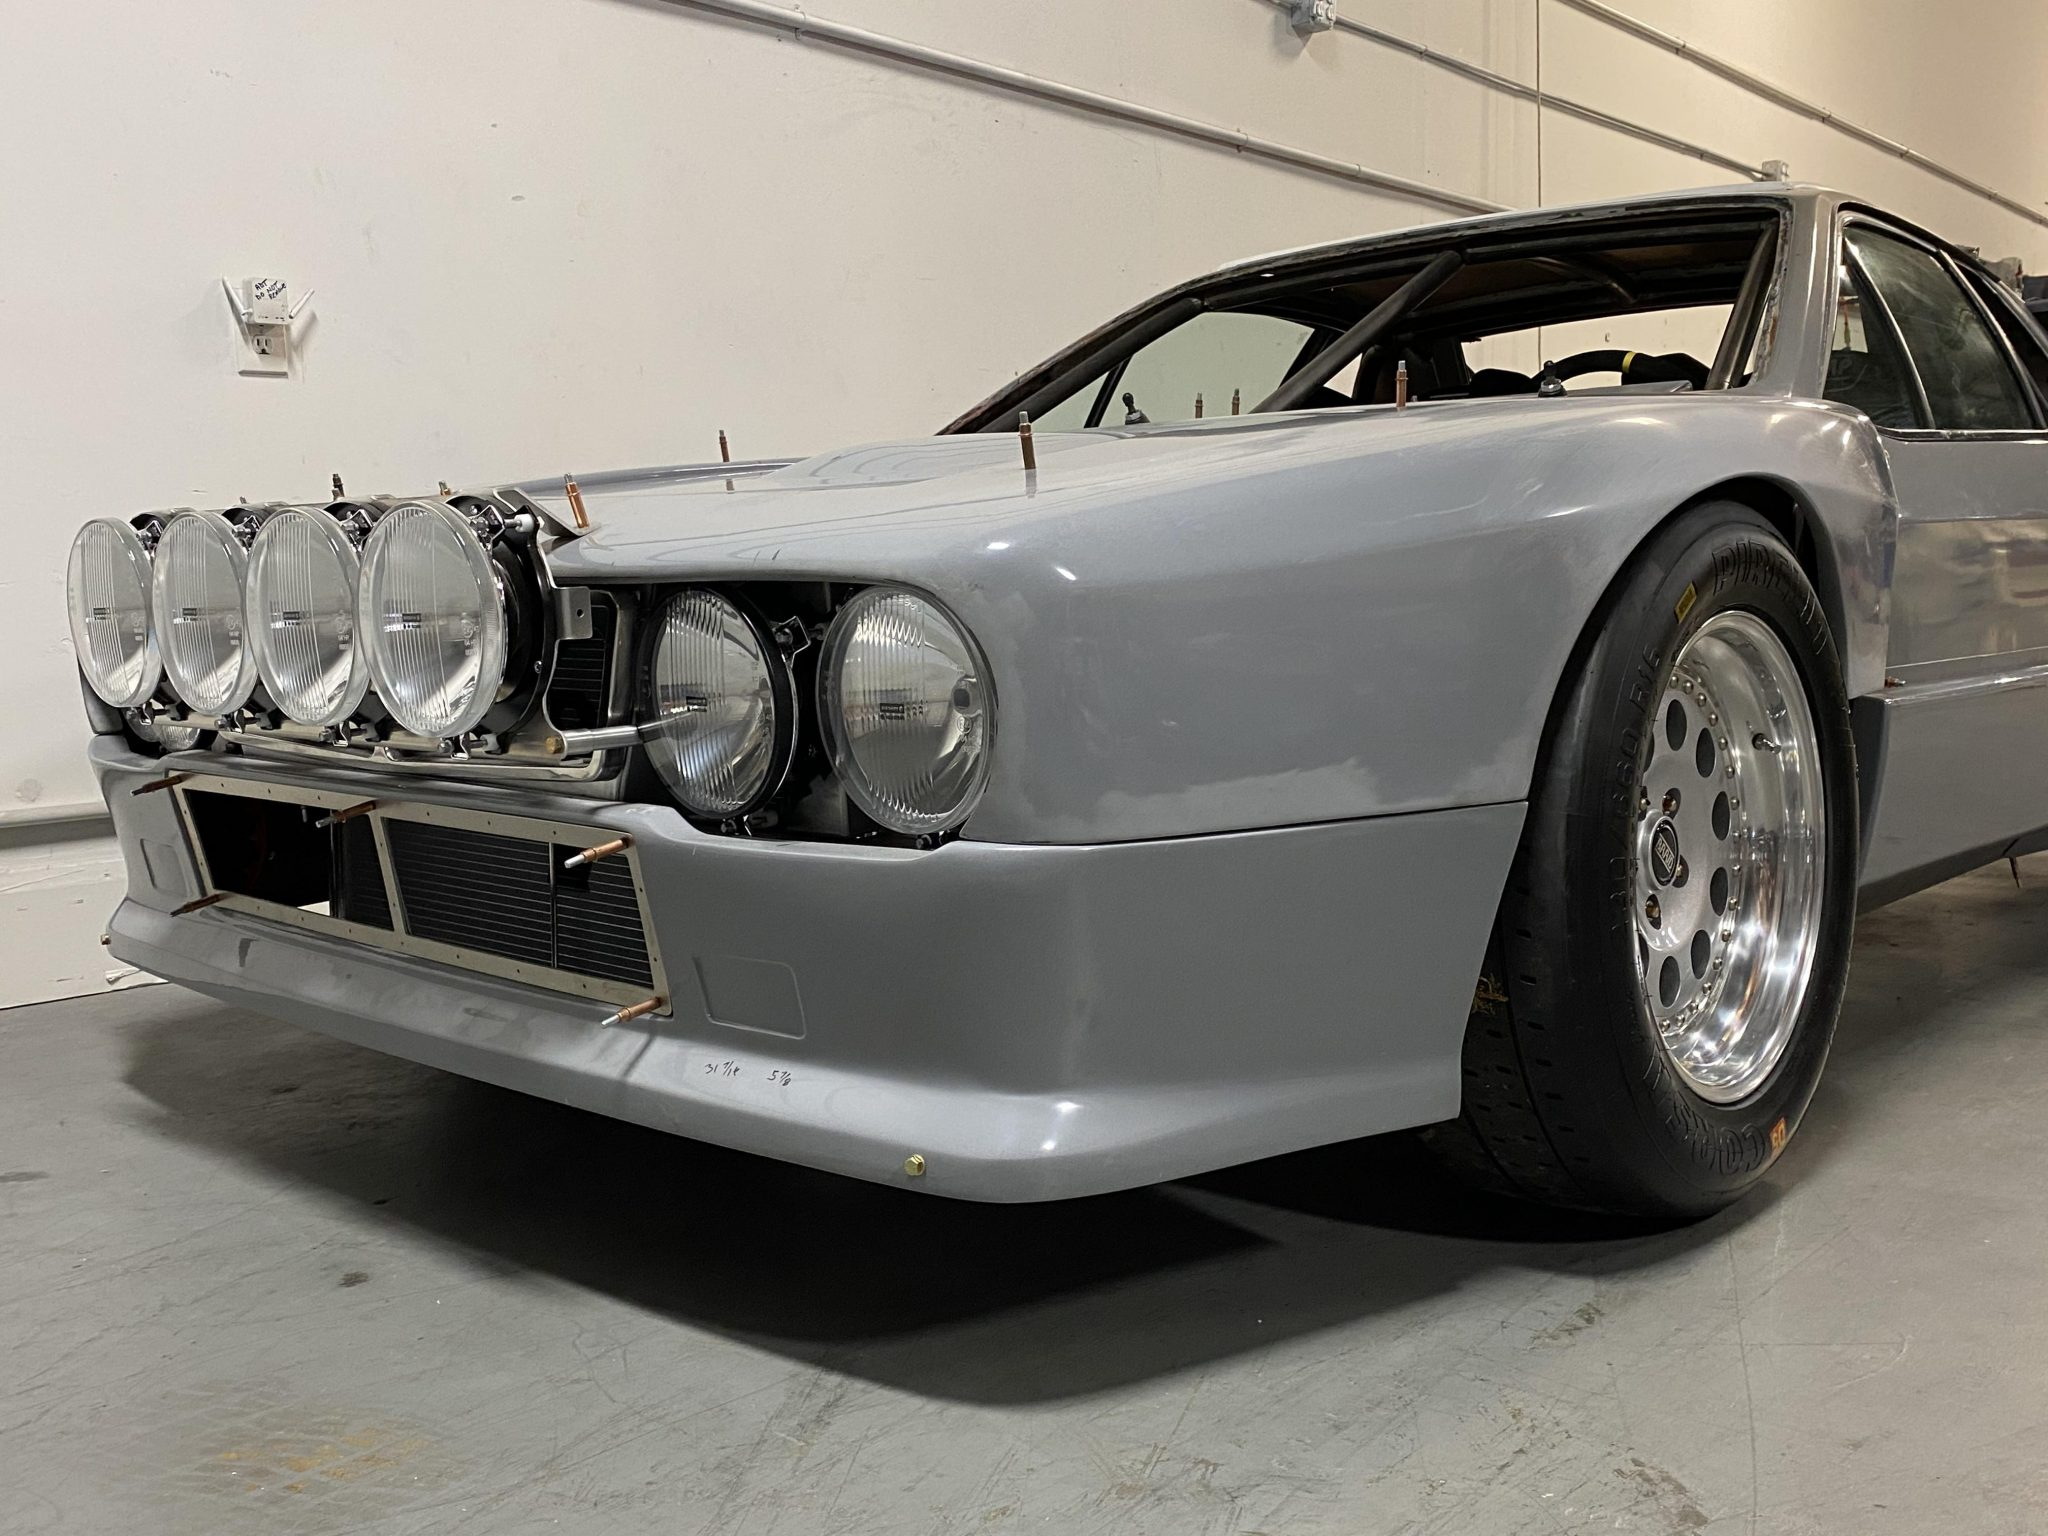 1977 Lancia 037 Tribute front end